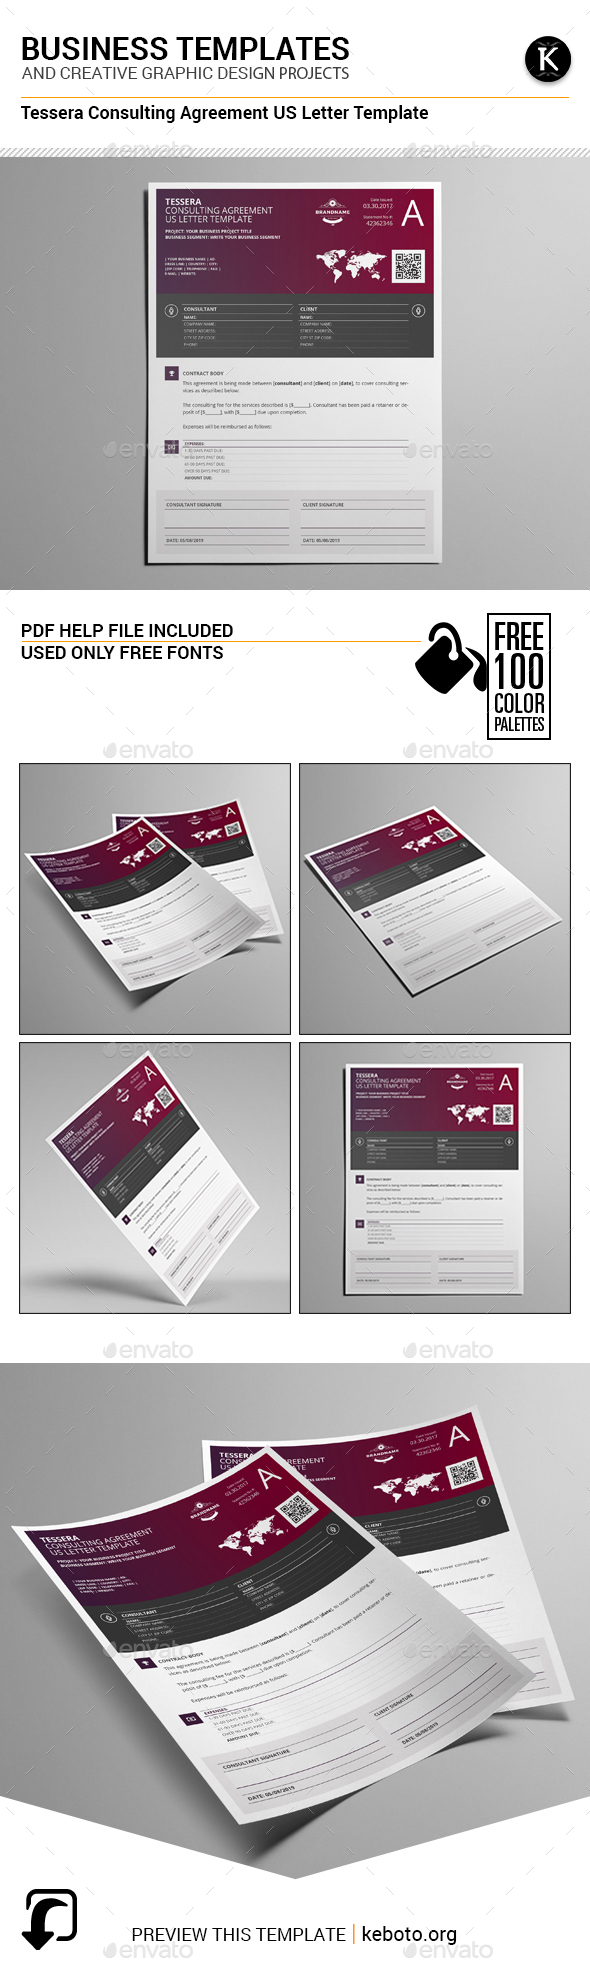 Tessera Consulting Agreement US Letter Template by Keboto | GraphicRiver